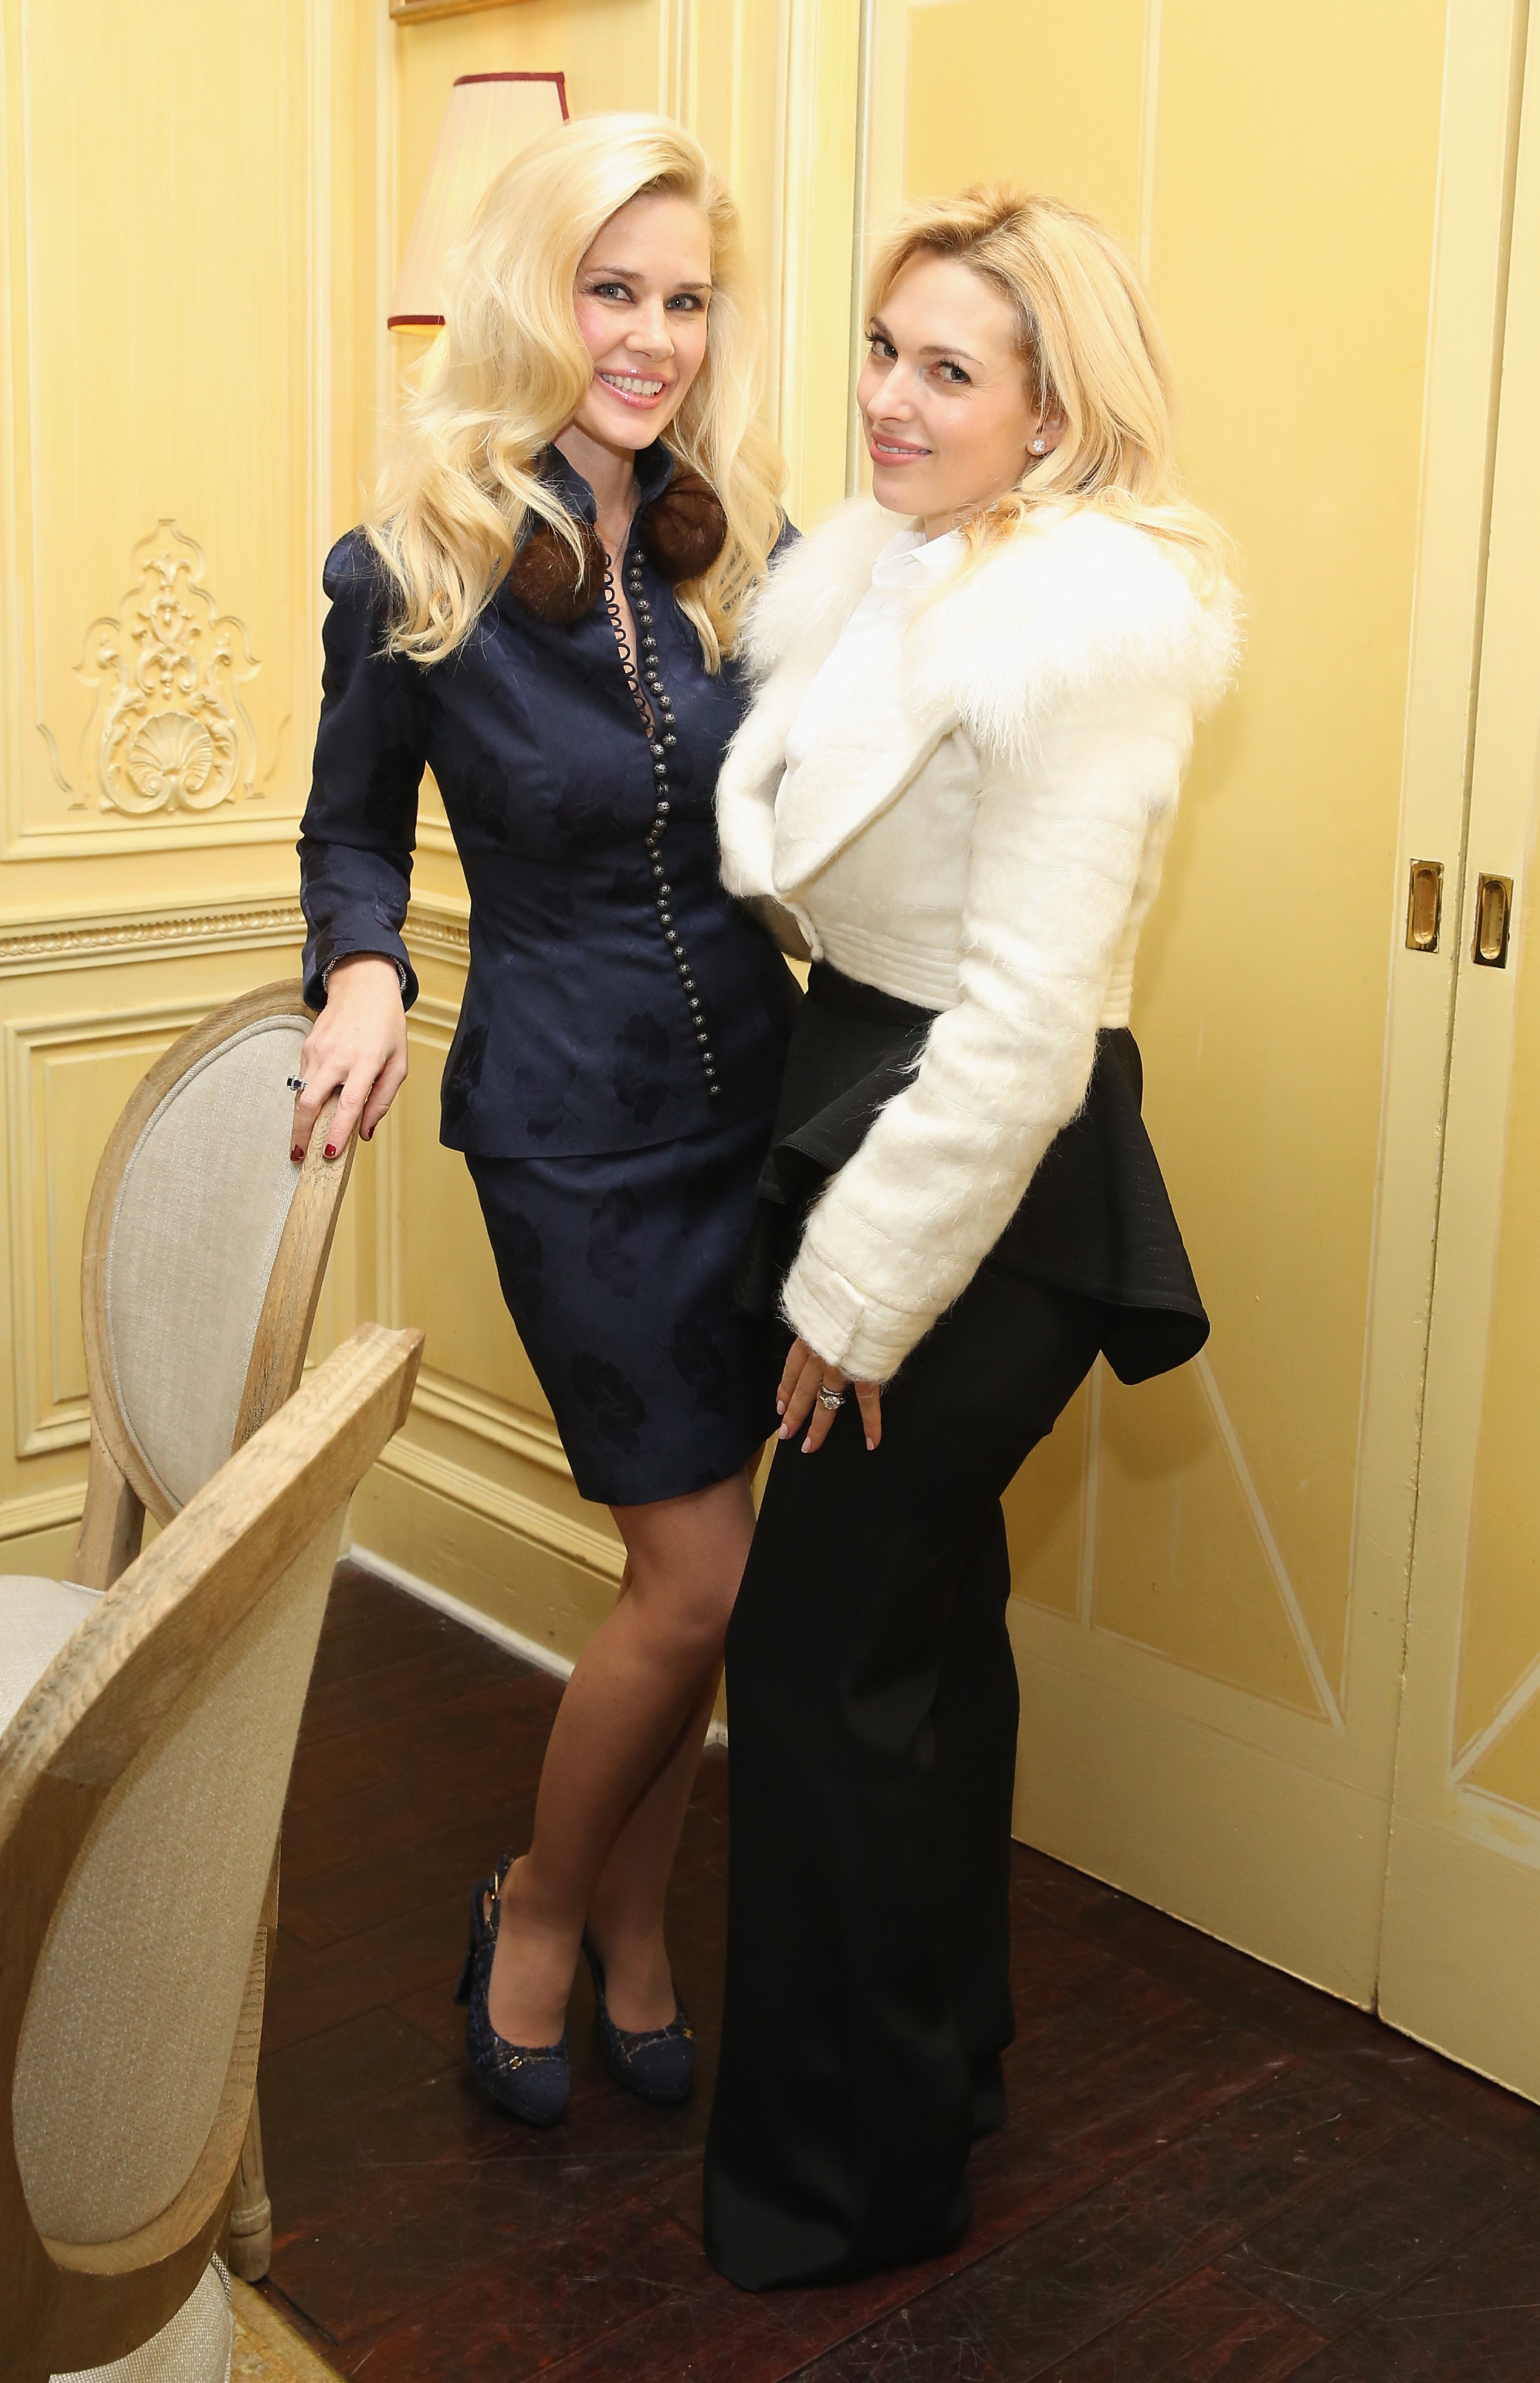 NEW YORK, NY - JANUARY 08: New York Socialite Michelle-Marie Heinemann and Anne Baker attend a Luncheon for Prince Charles Henri Lobkowicz At Plaza Athenee on January 8, 2016 in New York City. (Photo by Robin Marchant/Getty Images for Old Fashioned Mom Magazine)